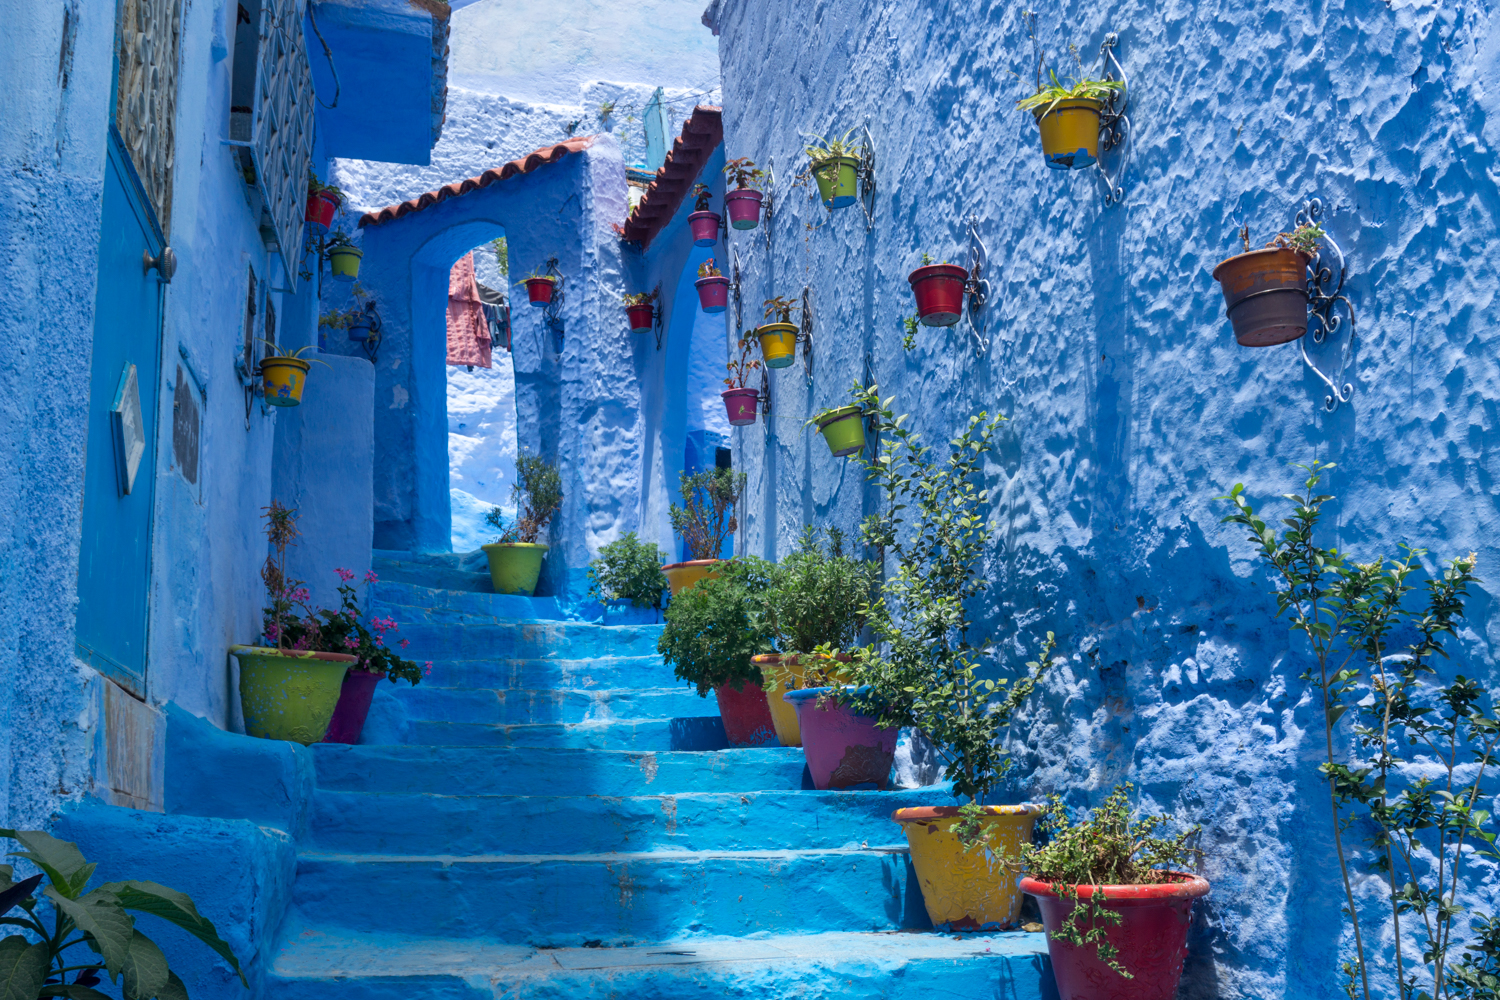 One of the most famous allies in Chefchaouen's medina